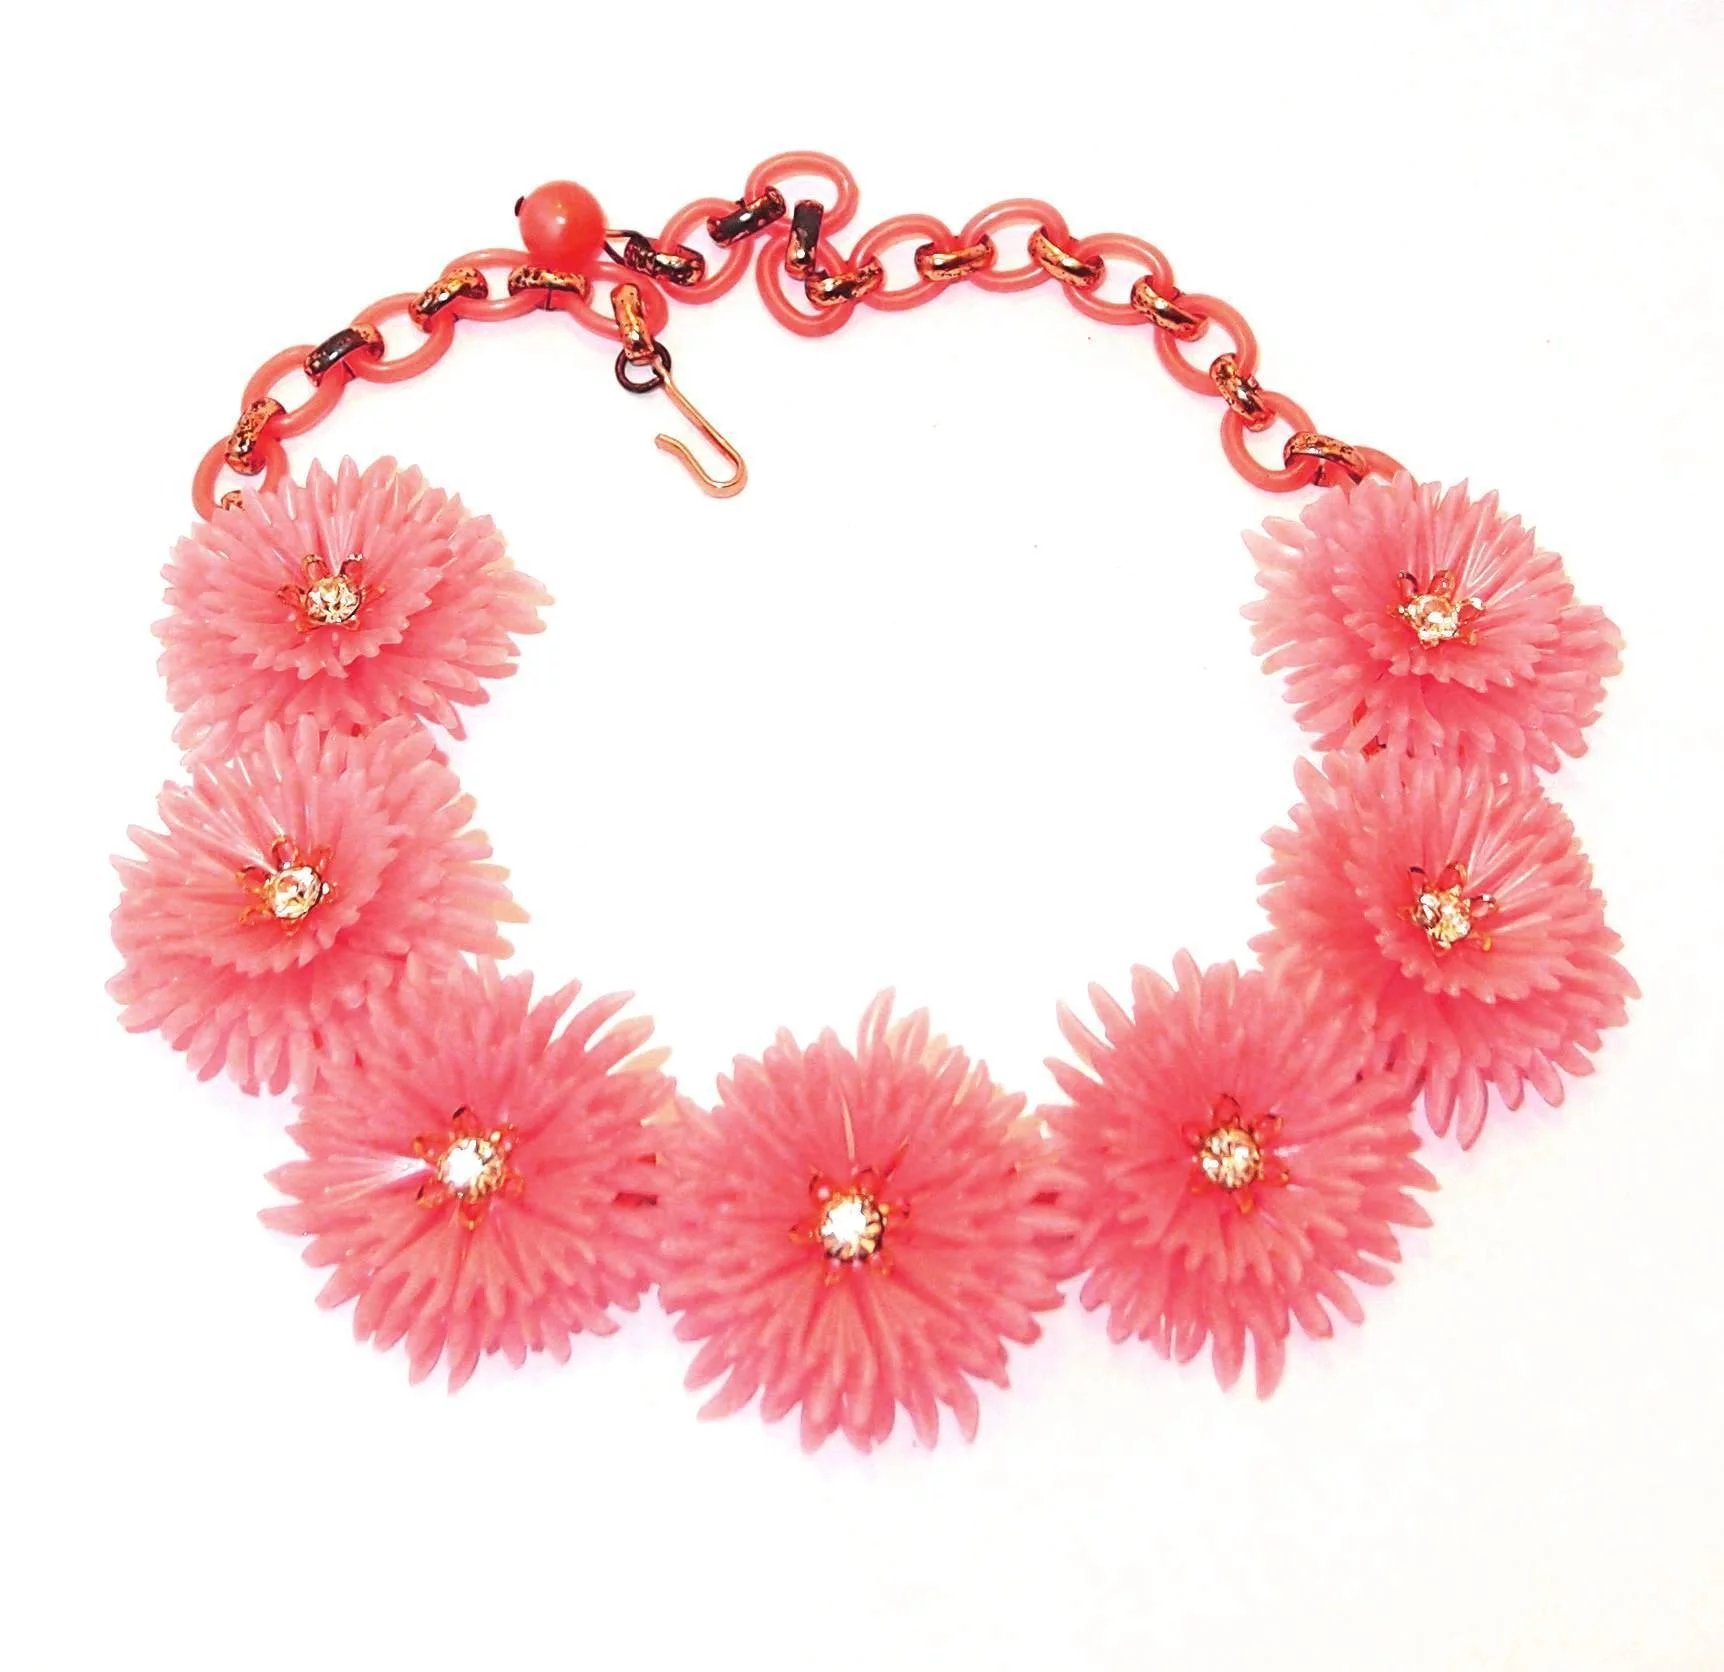 Pink lisner flower necklace plastic with rhinestone centers pink lisner flower necklace plastic with rhinestone centers click to expand mightylinksfo